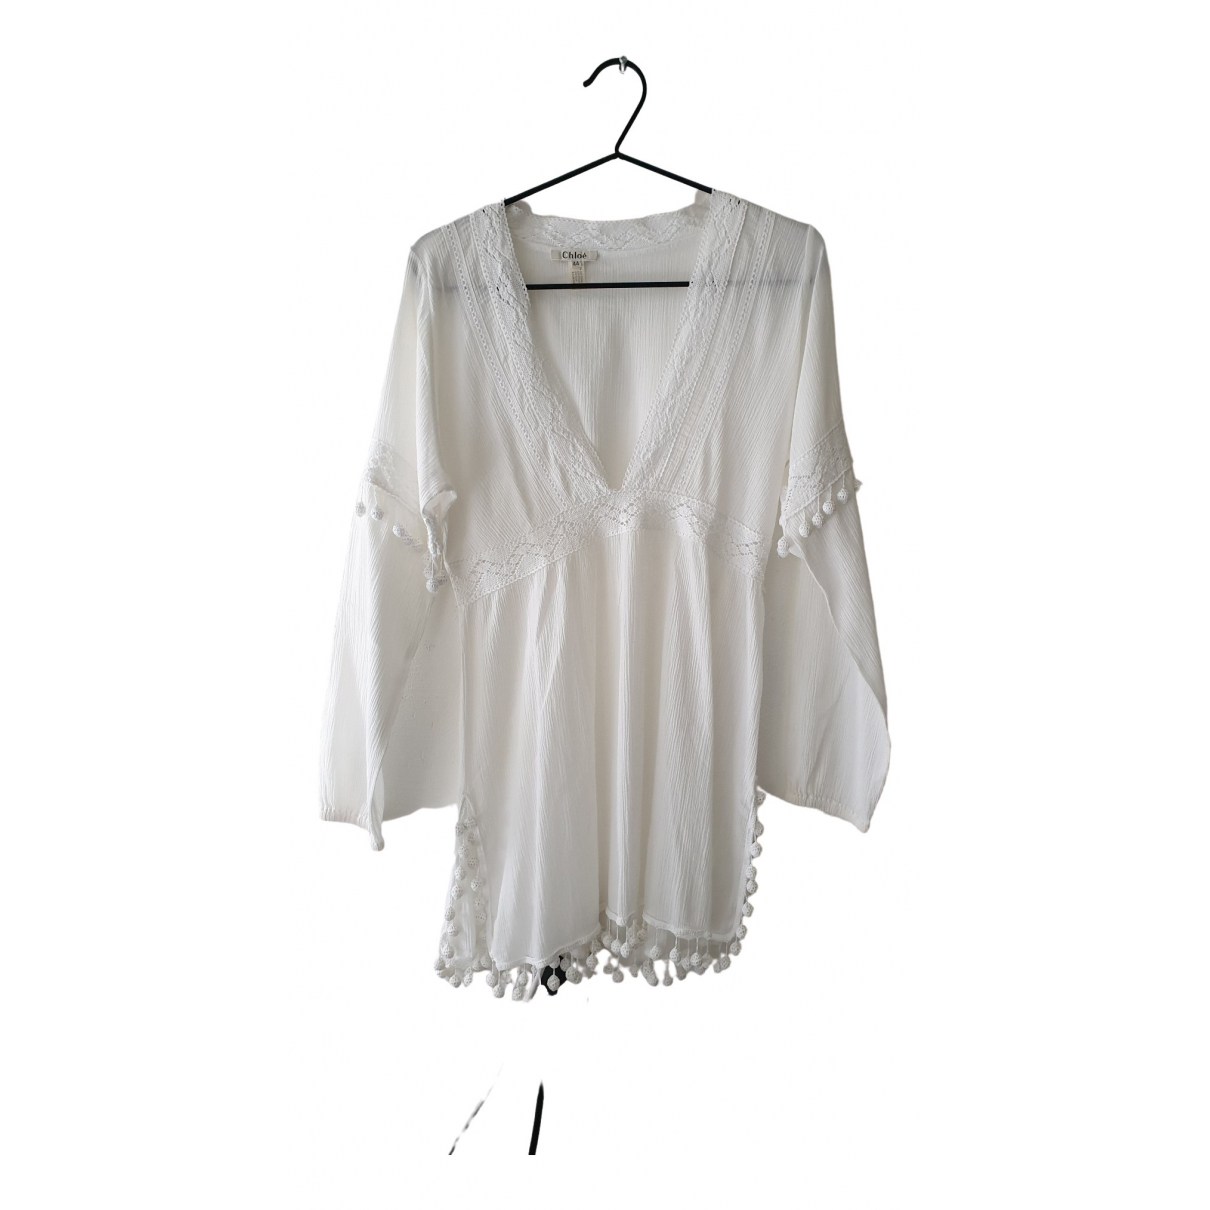 Chloé \N White Cotton dress for Women 44 IT